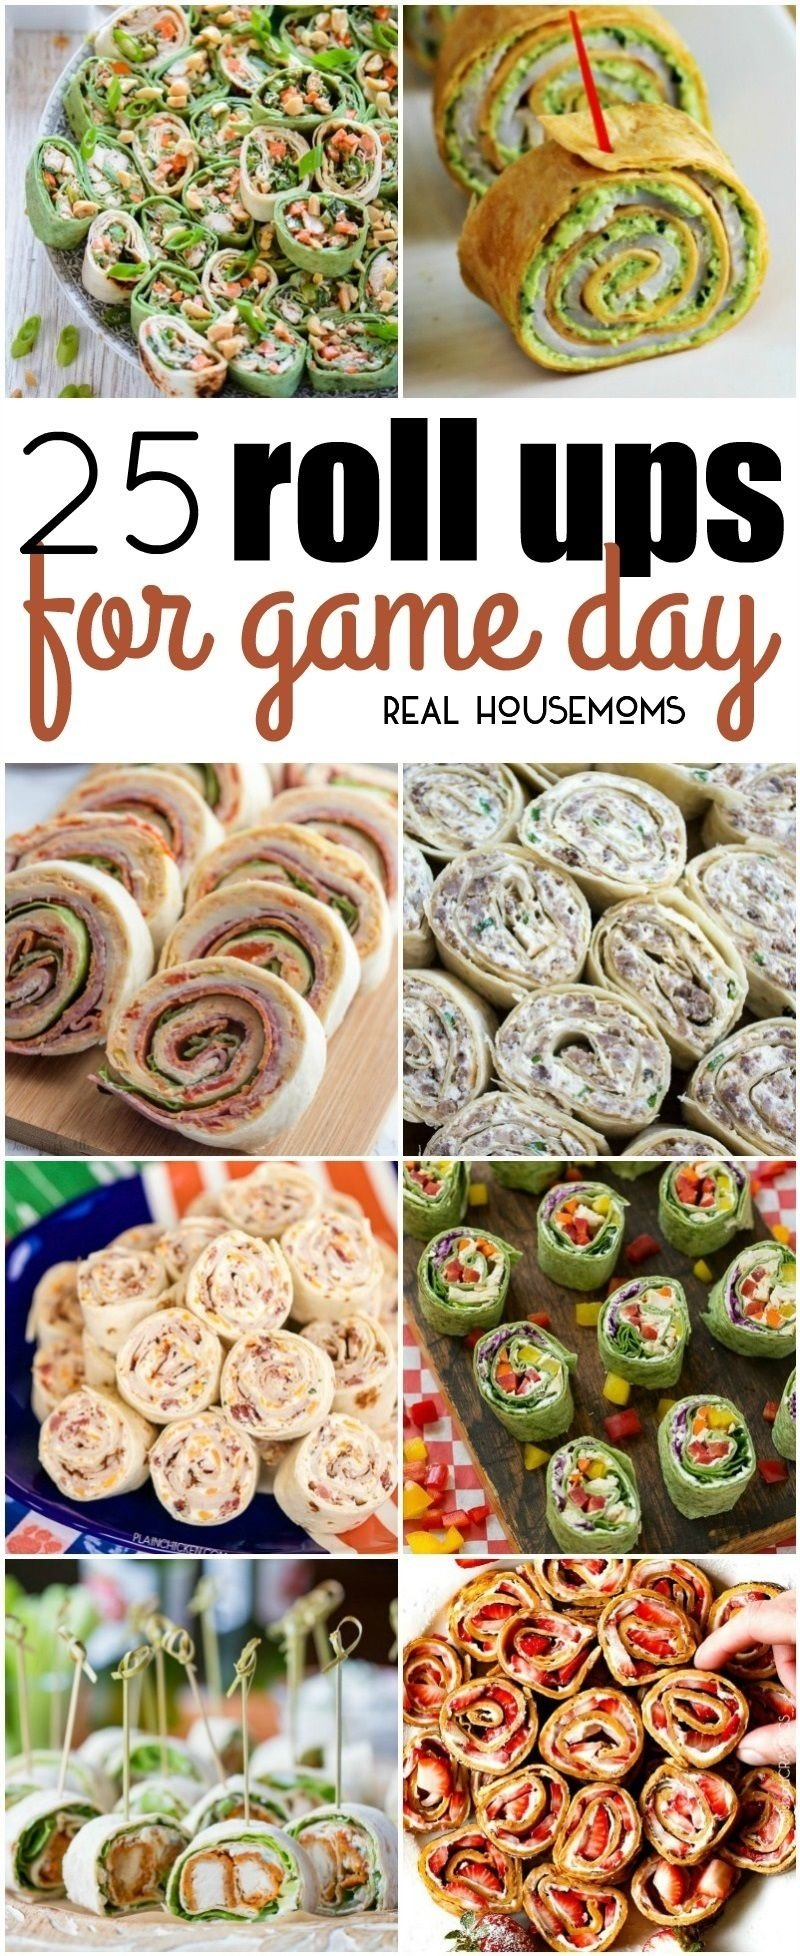 10 Best Football Party Food Menu Ideas 25 roll ups for game day finger foods football games pinwheel 2020